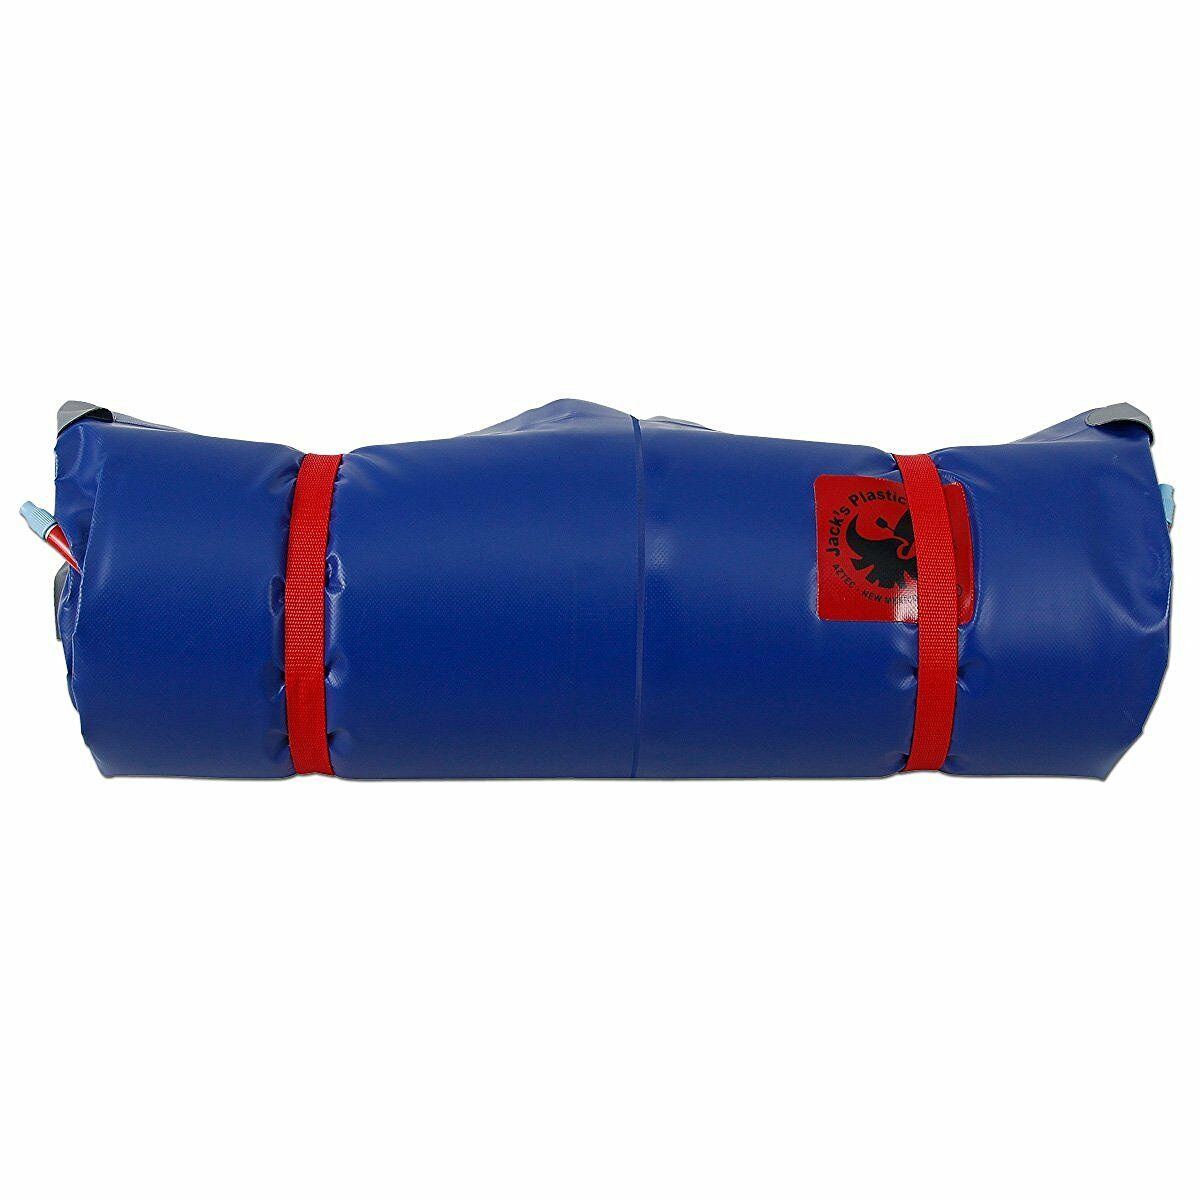 Super Paco Pad - Inflatable Sleeping Pad for Rafting, Fishing, Outdoor Activity